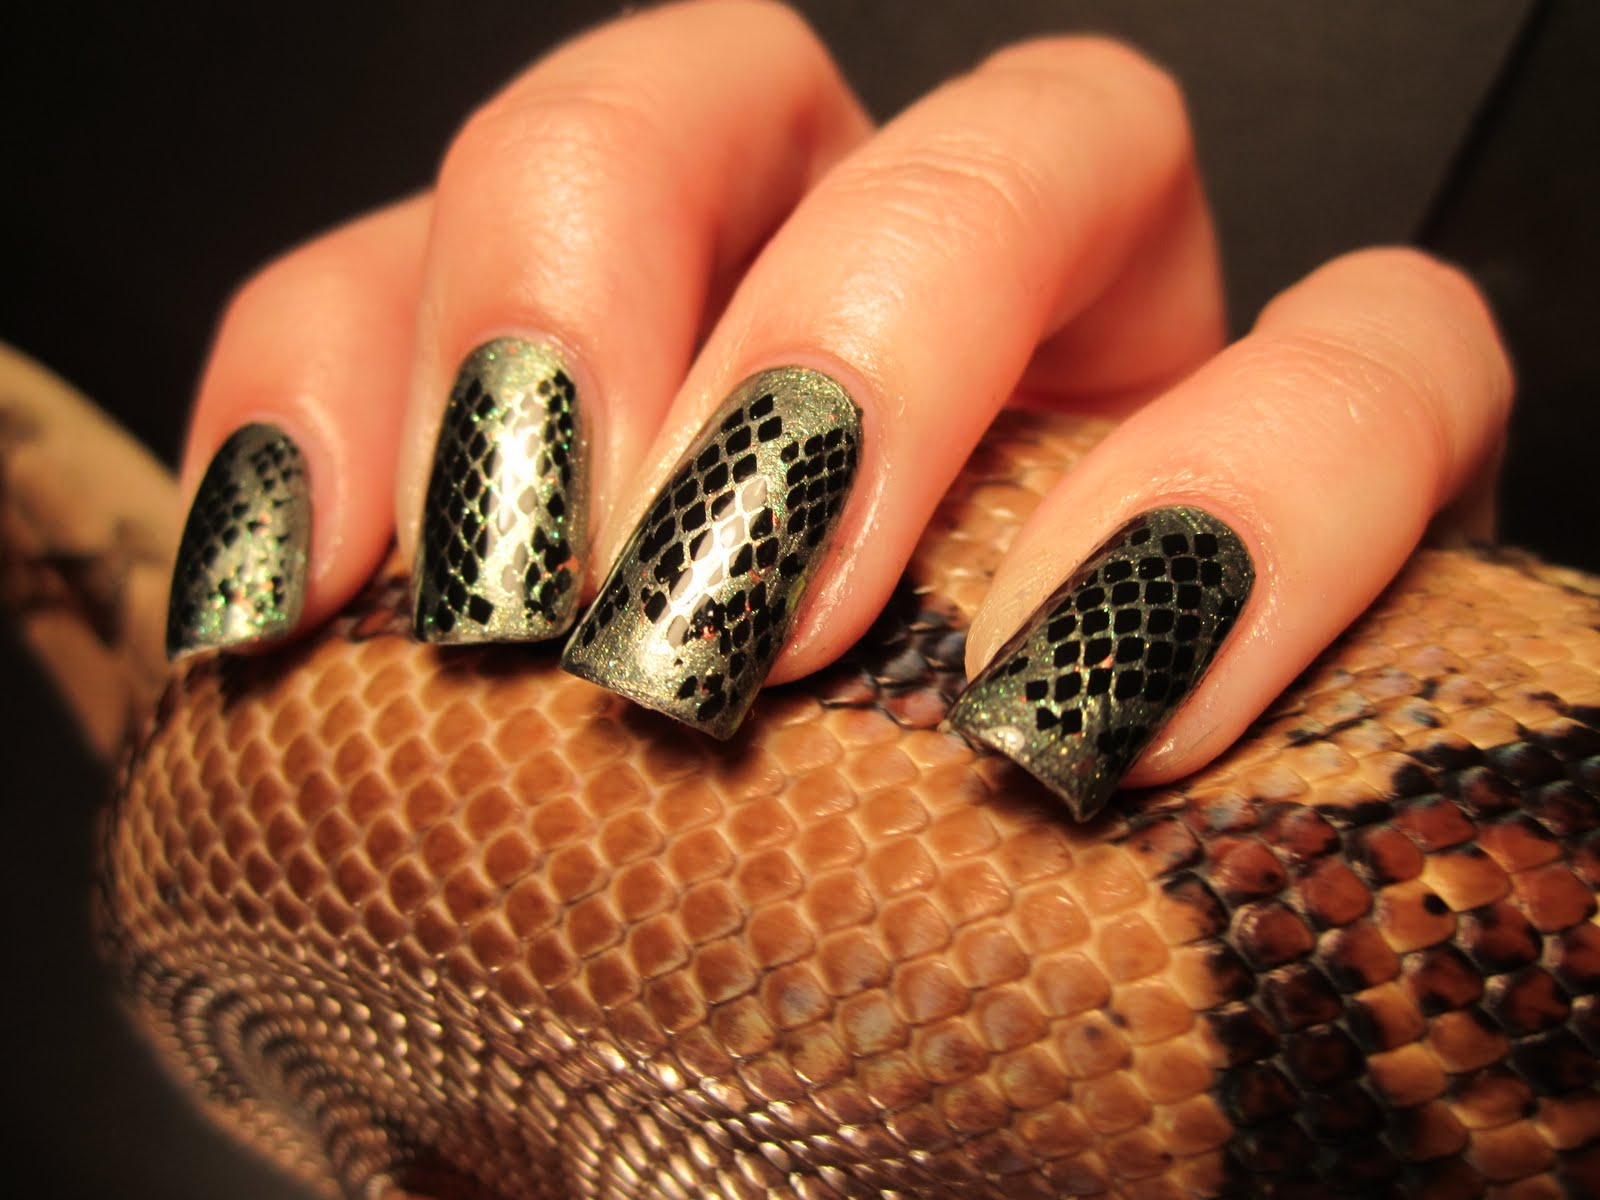 Animal print nail designs - Yve Style - Yve Style